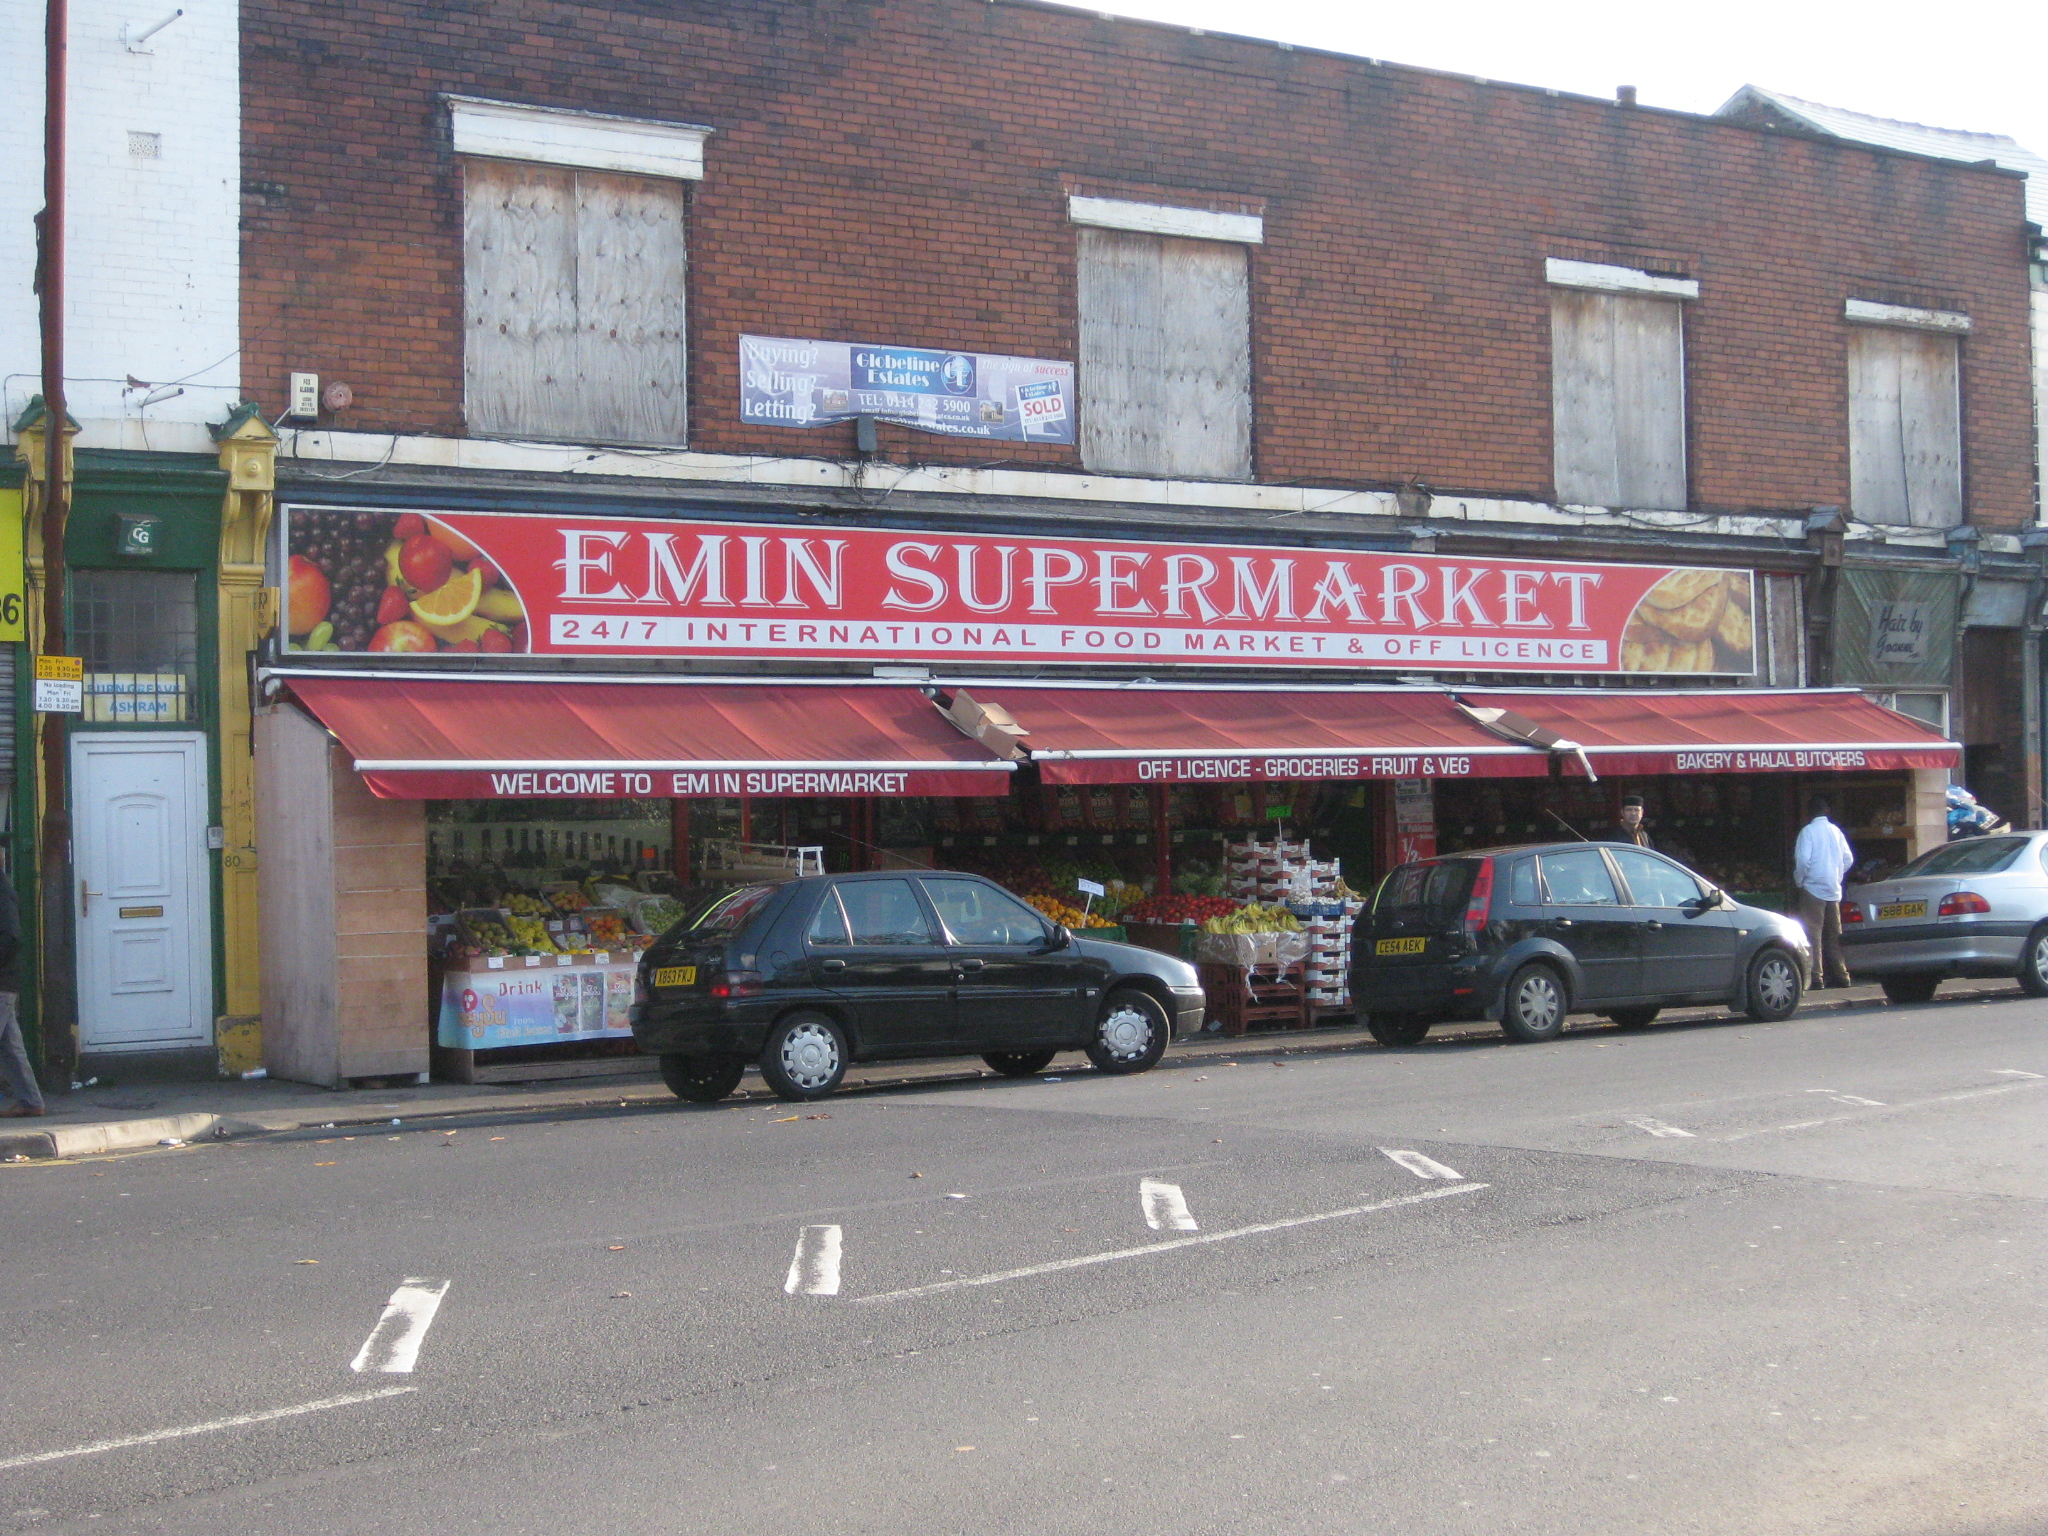 Emin Supermarket on Spital Hill - home of amazing feta cheese truckles